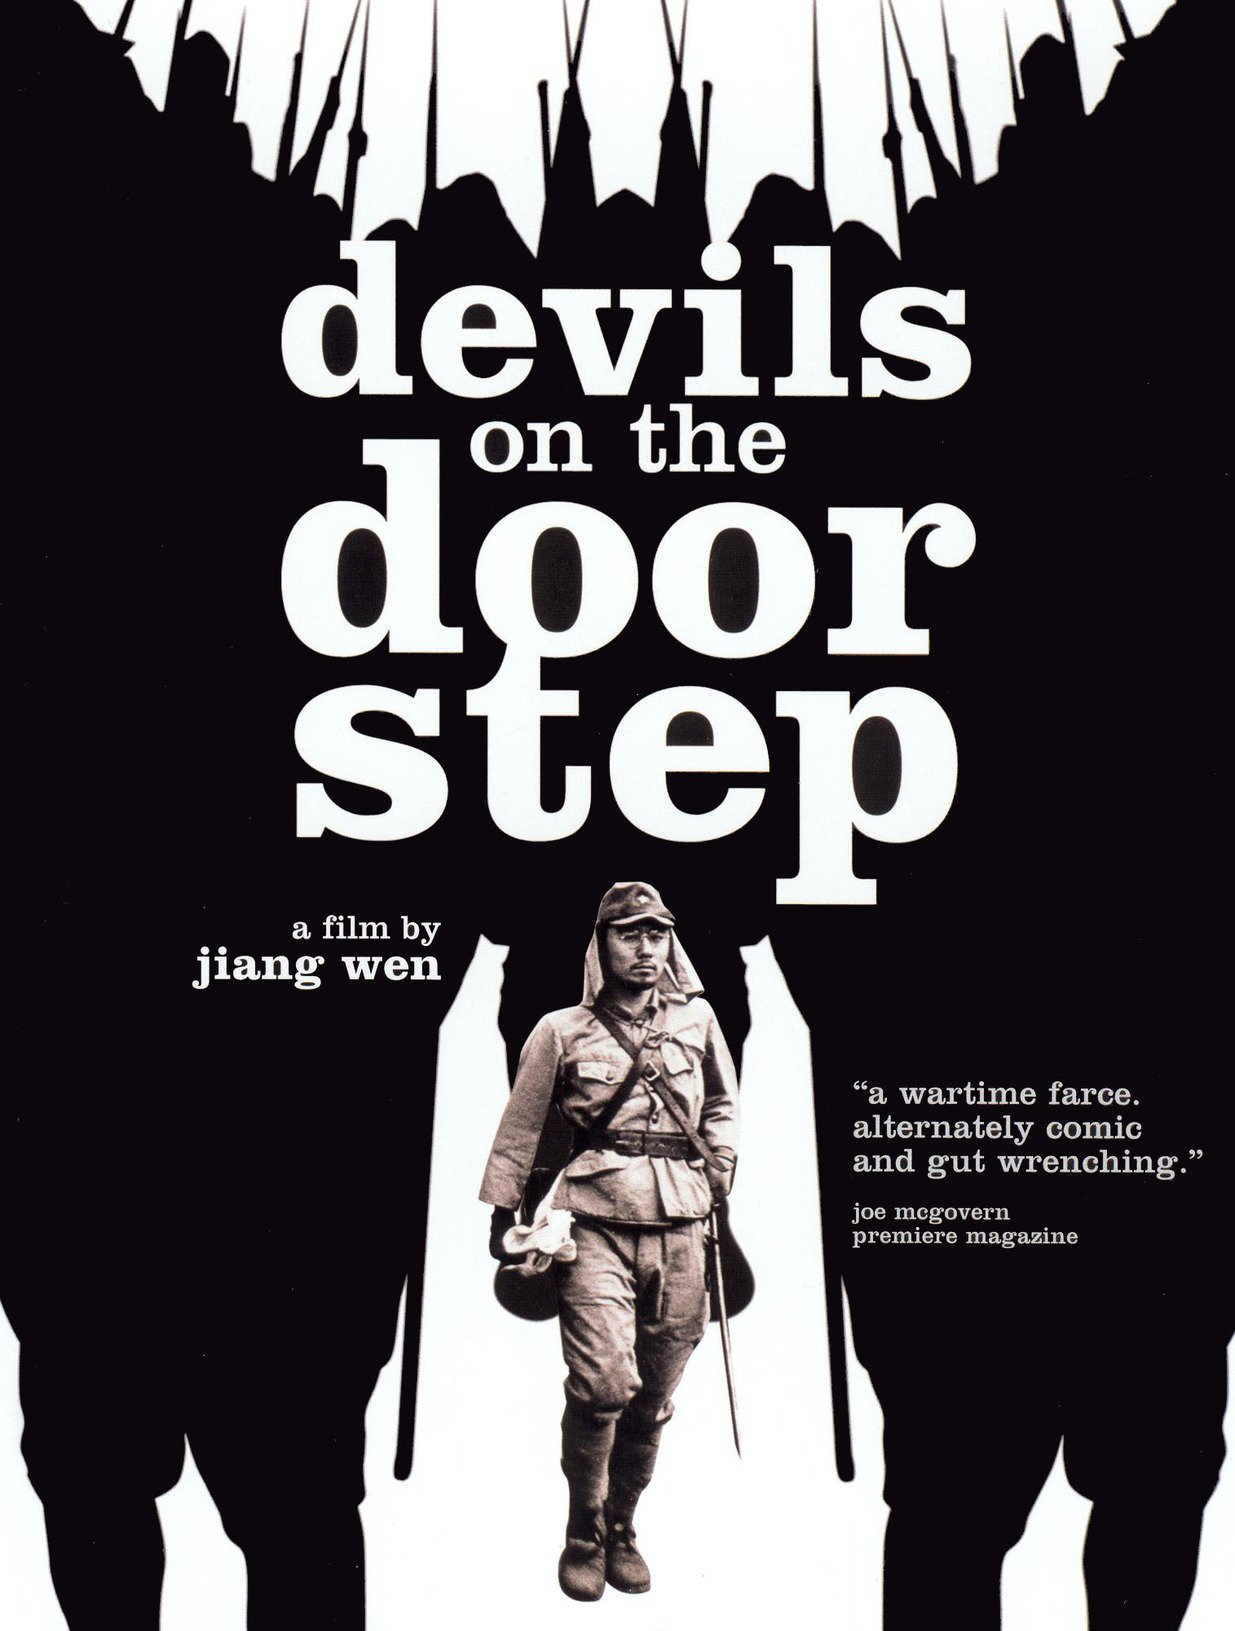 Devils on the door step